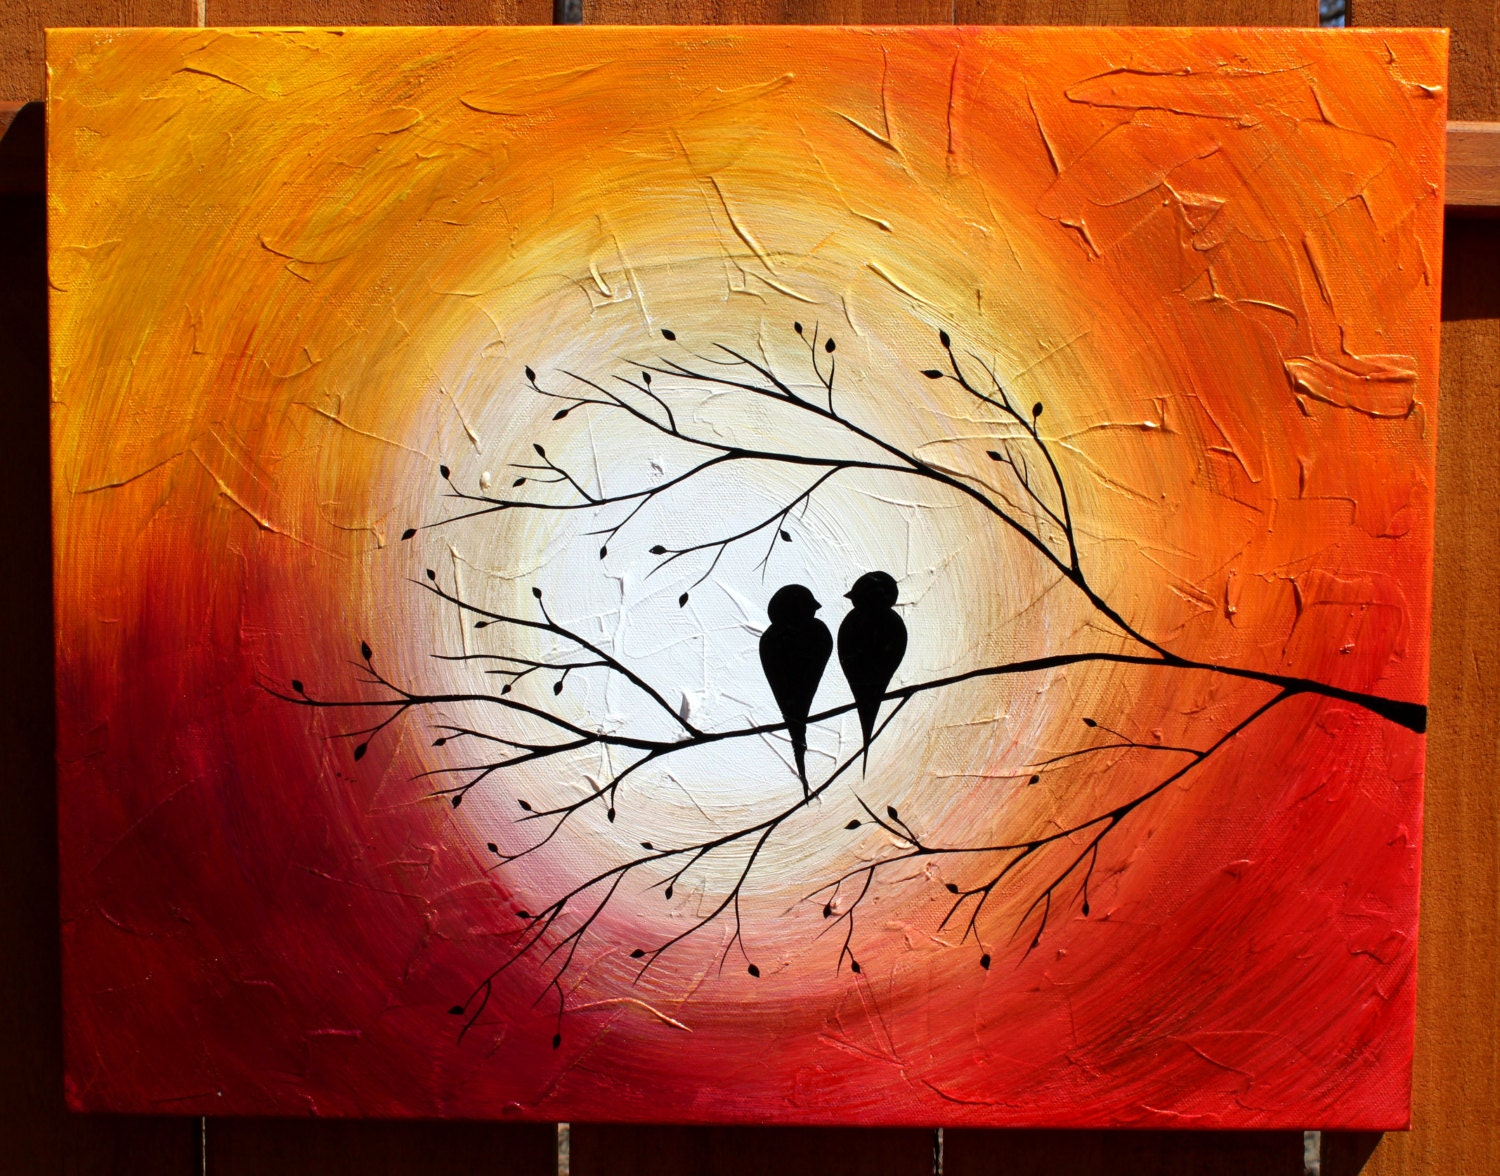 Love Birds On A Tree Limb In The Sunrise/Sunset: Acrylic